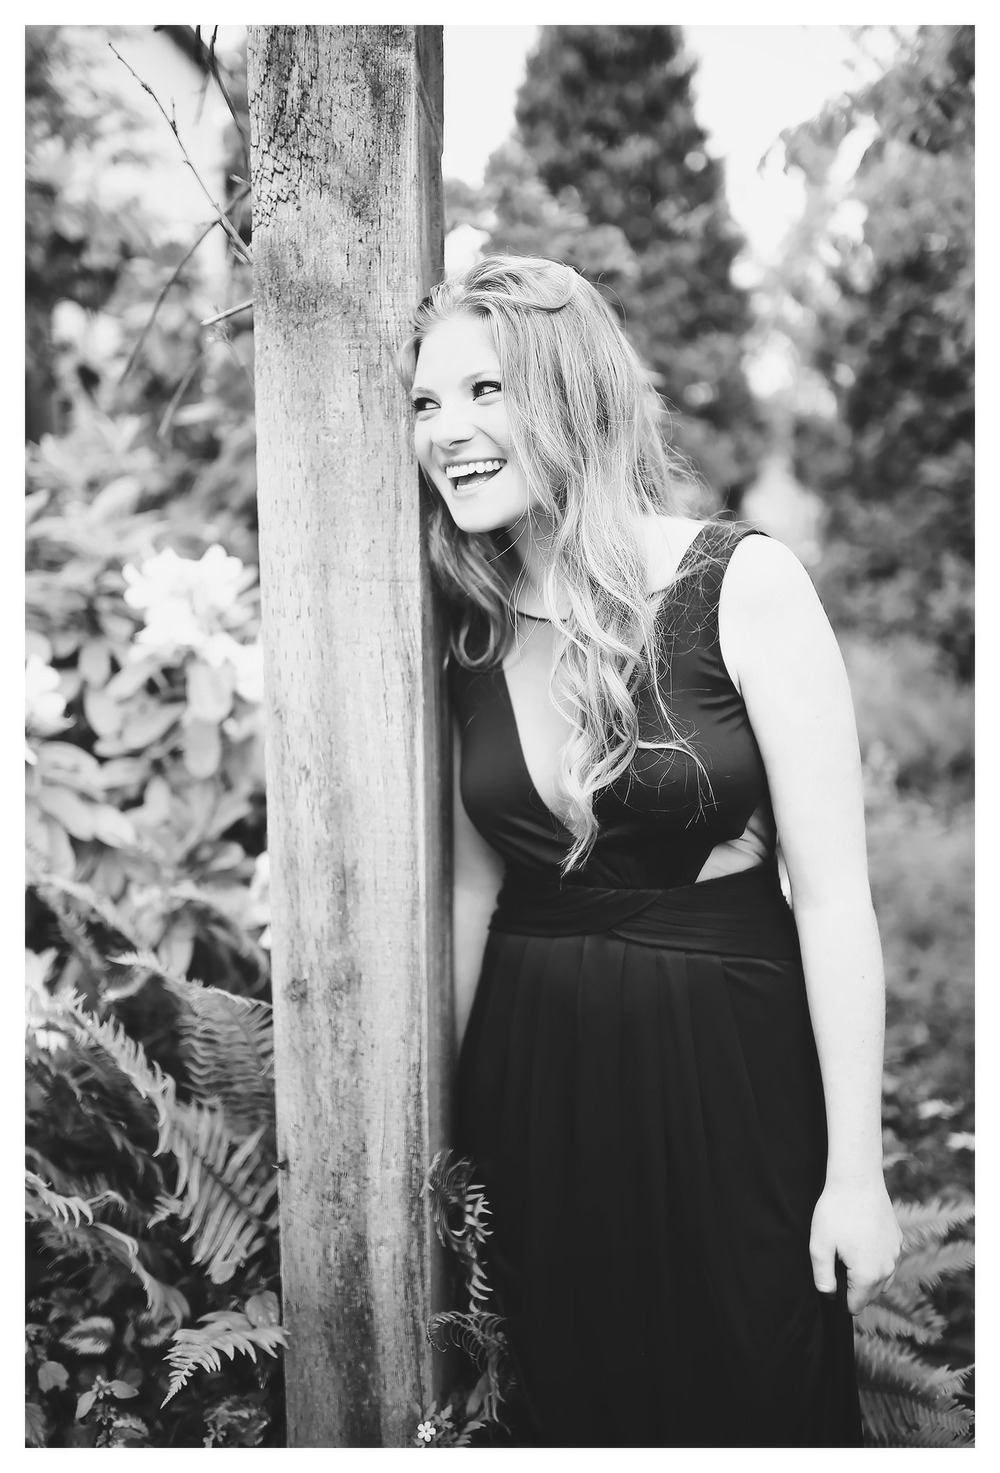 beauty grad styled photo shoot - sunshine coast, bc - jennifer picard photography